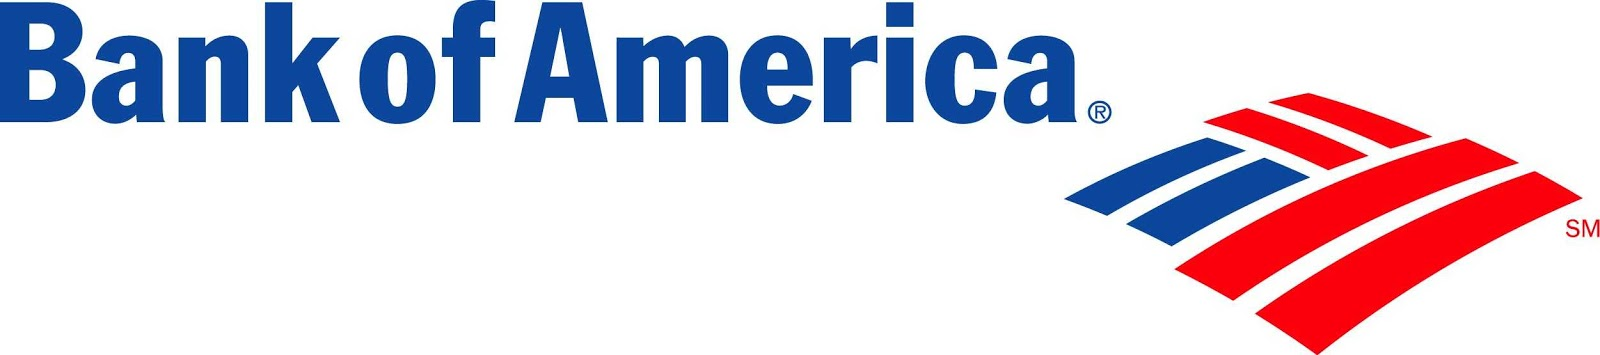 Bank Of America History of All L...